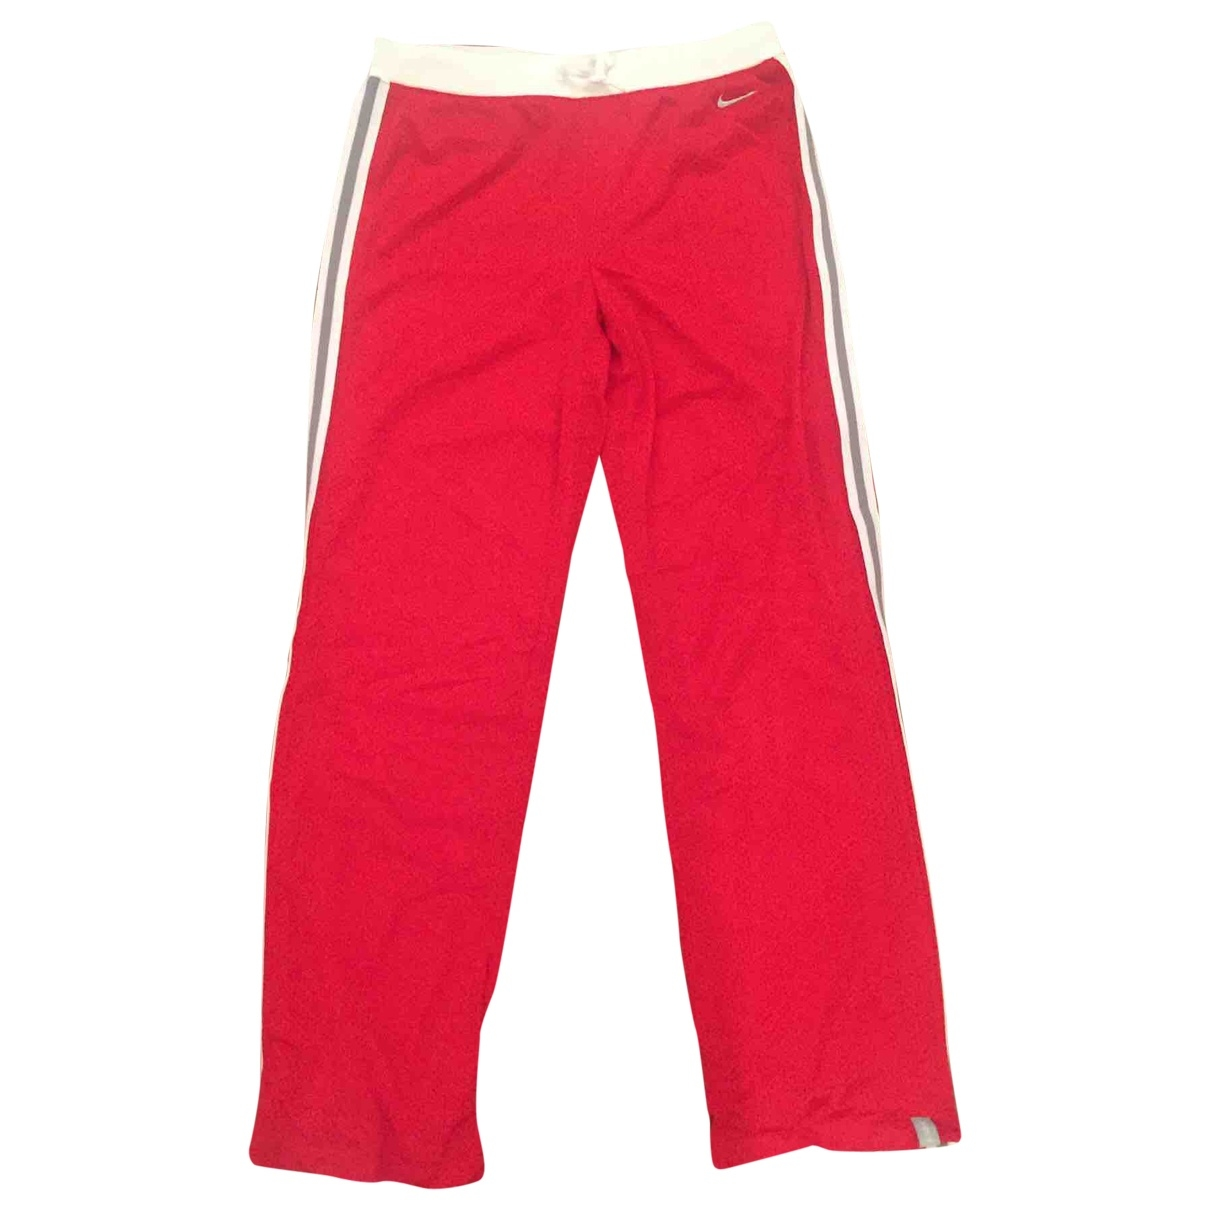 Nike \N Red Trousers for Women M International